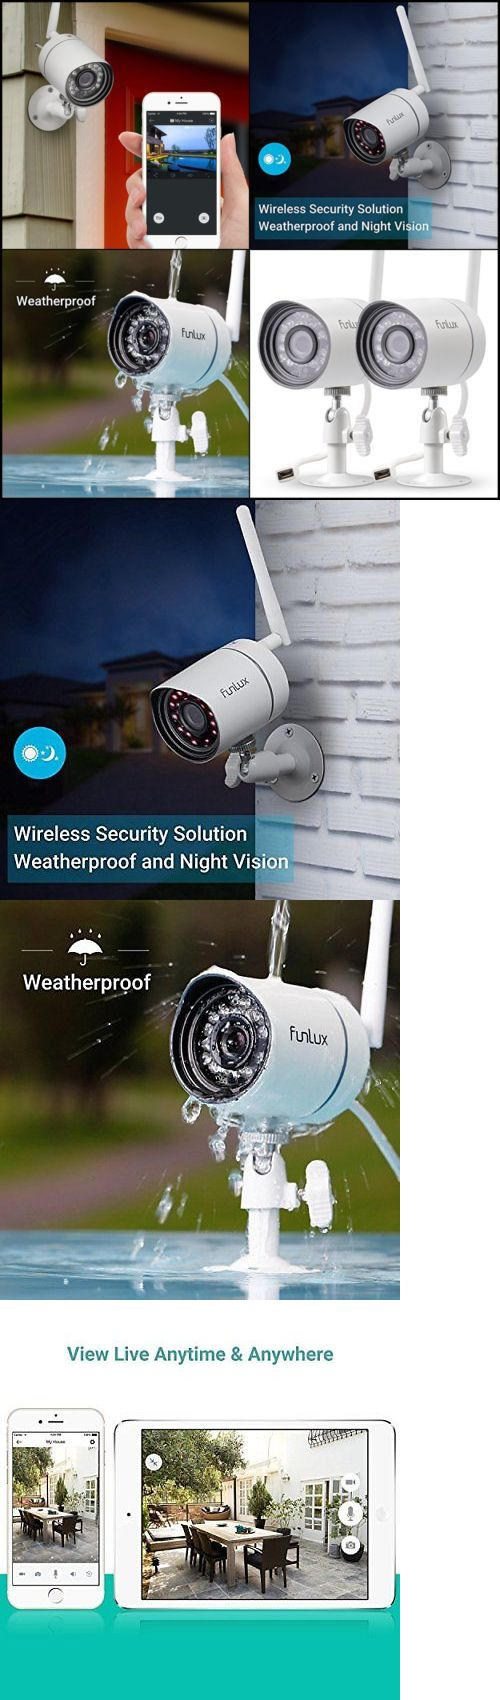 Security Cameras: 2 Pack Wireless Security Camera Outdoor System 720P Hd Video Night Vision Home -> BUY IT NOW ONLY: $75.95 on eBay!